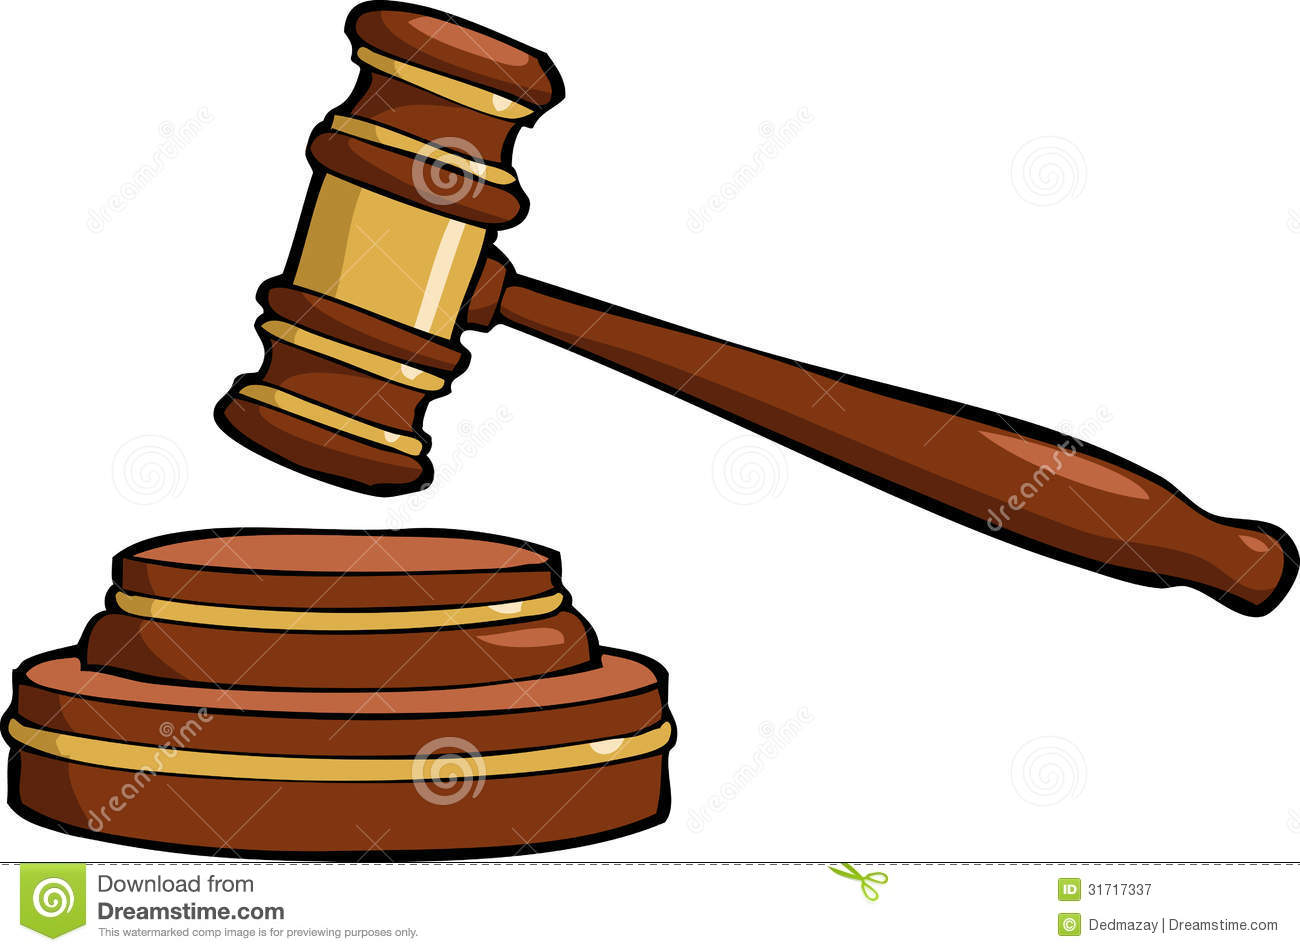 Stock photos mallet of judge image 10990093 - Stock Photos Mallet Of Judge Image 10990093 1